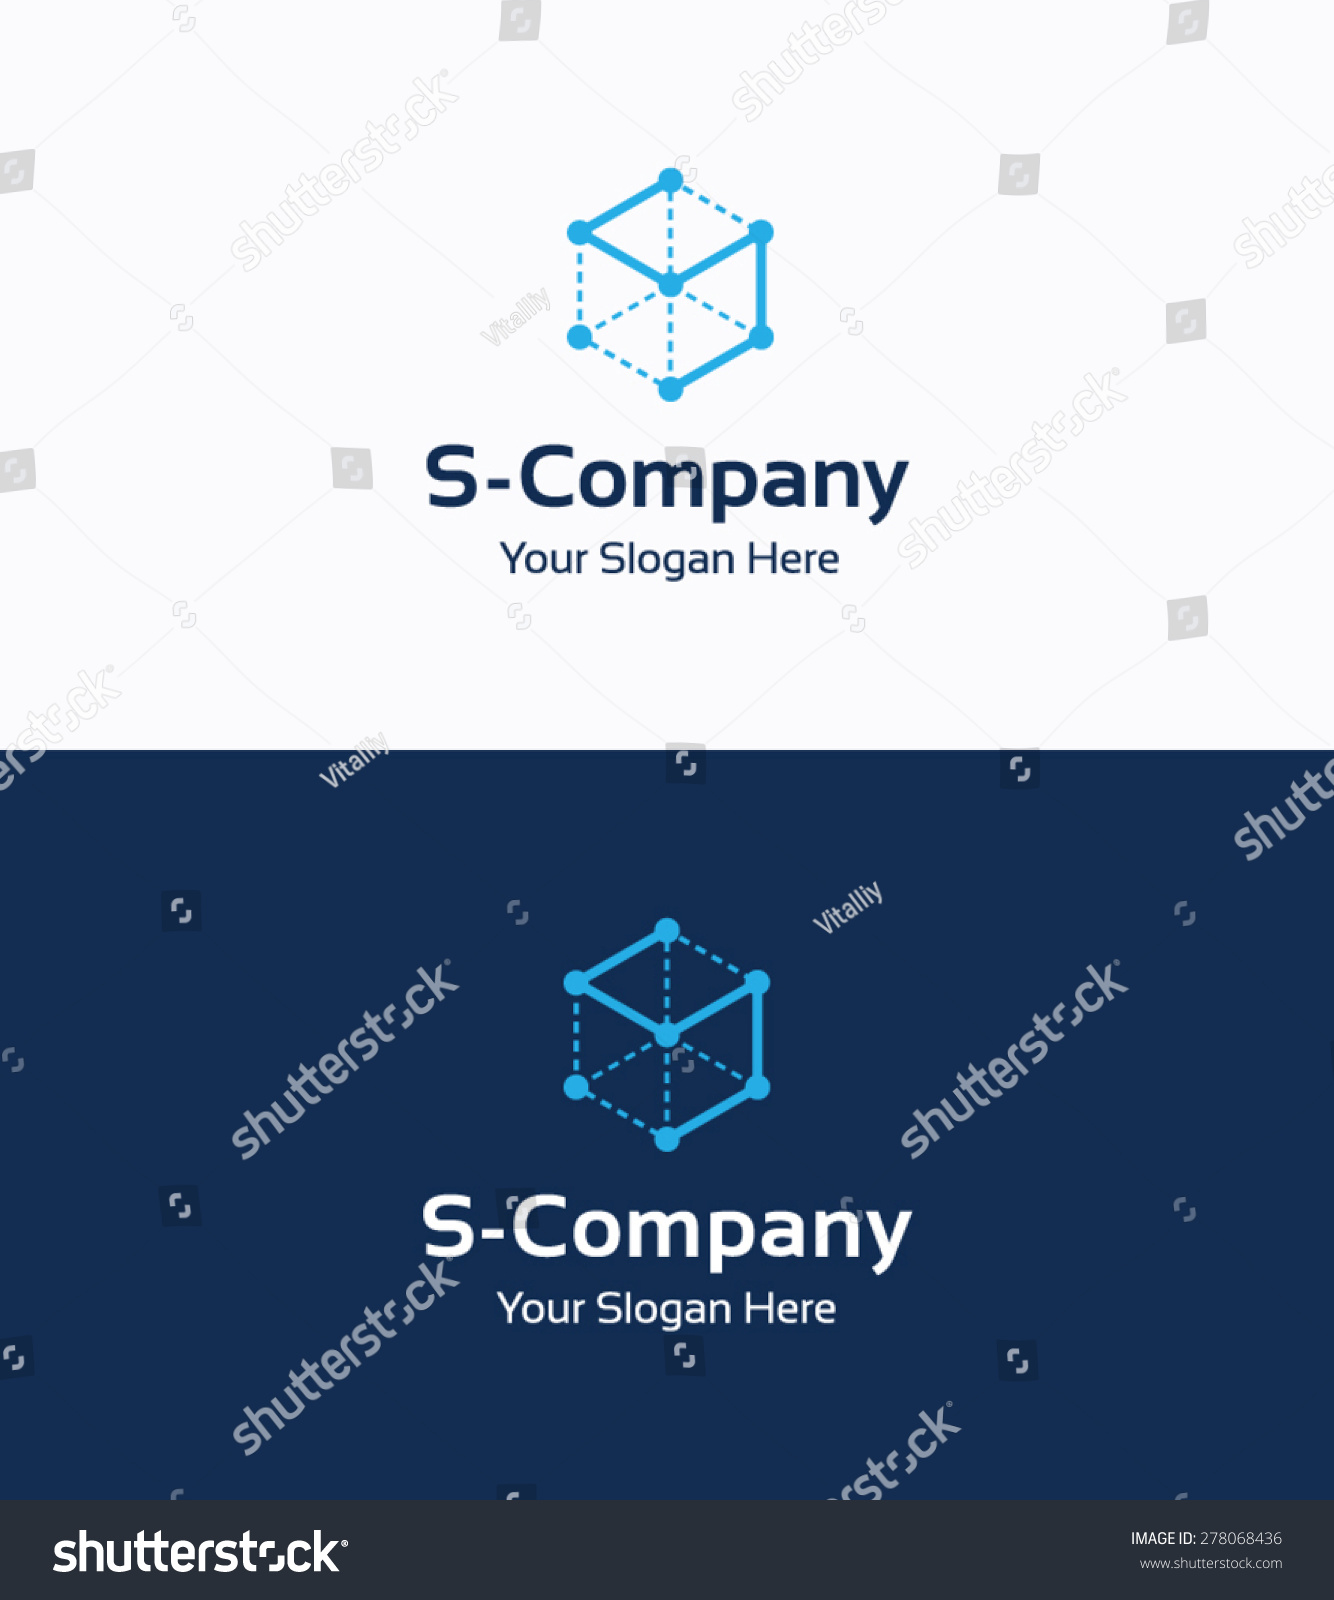 frame cube 3 d company logo template のベクター画像素材